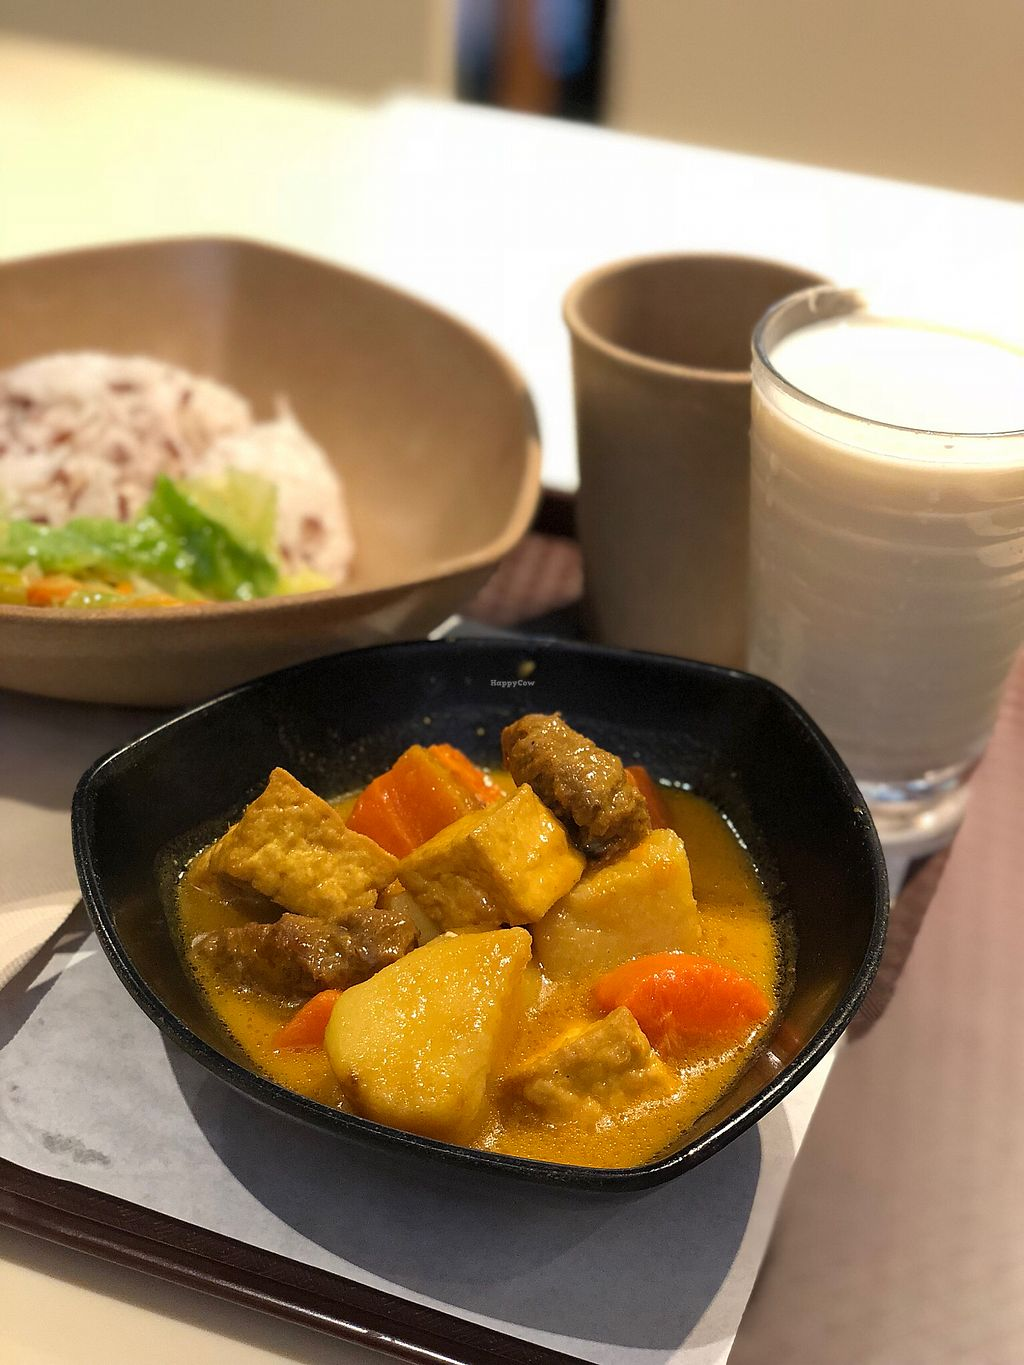 """Photo of Loving Hut - Amoy Plaza  by <a href=""""/members/profile/veggiefoodie"""">veggiefoodie</a> <br/>Potato Curry with Rice <br/> January 4, 2018  - <a href='/contact/abuse/image/11753/342862'>Report</a>"""